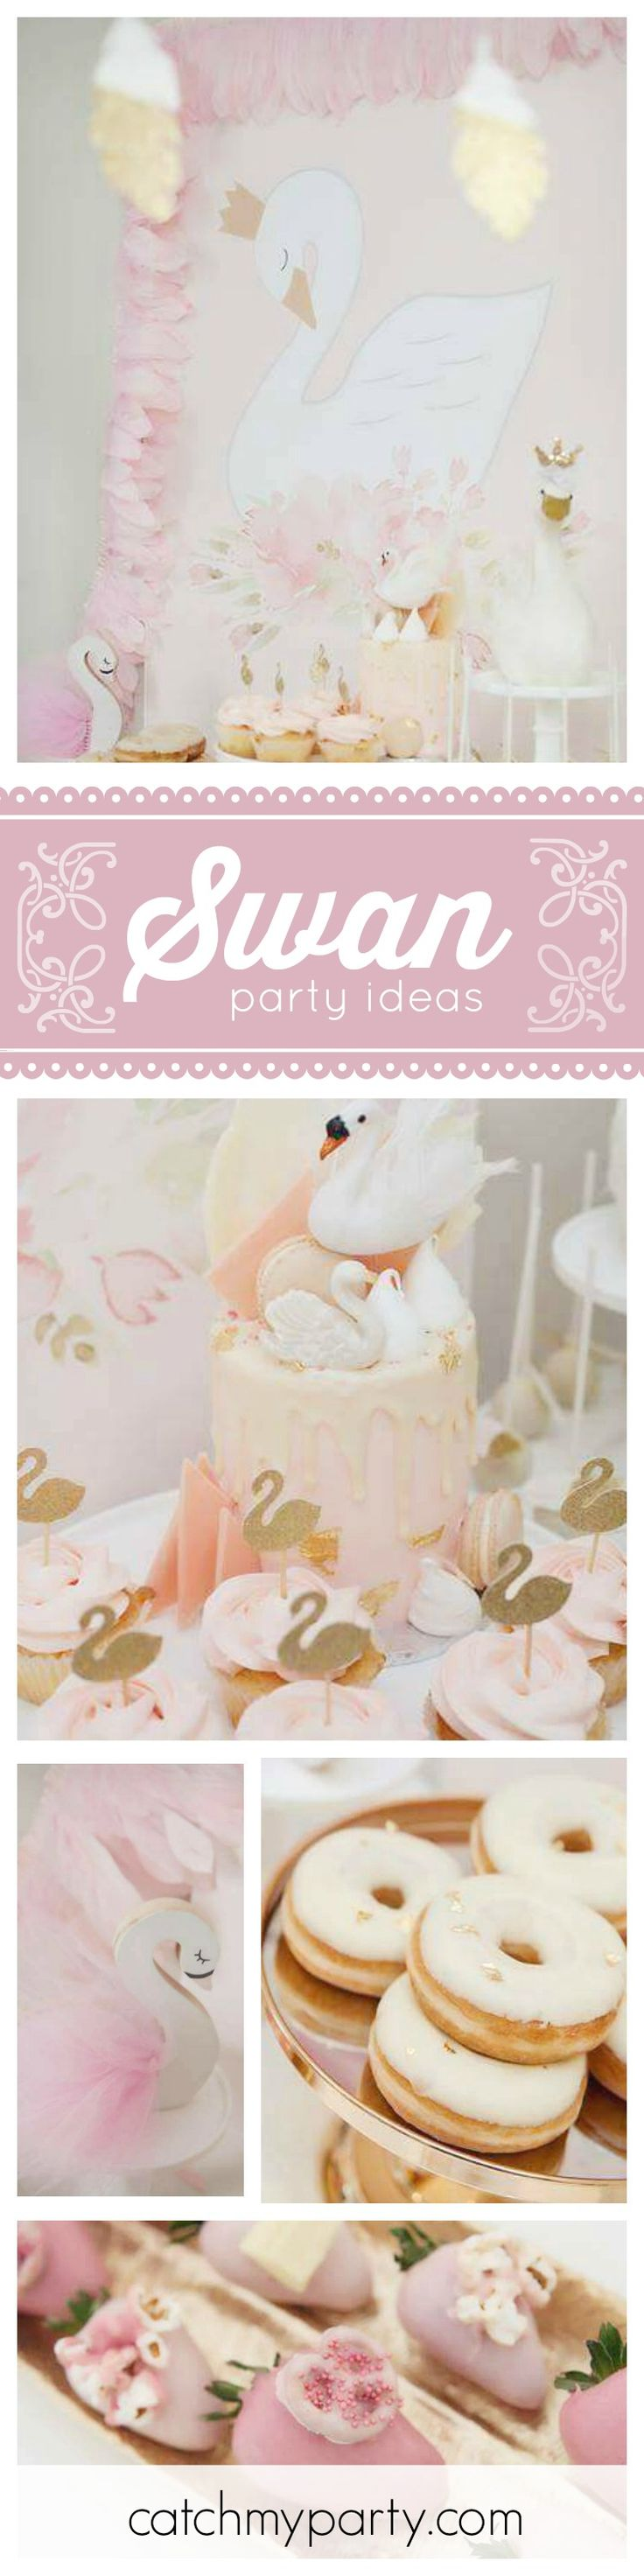 A gorgeous Swan birthday party!! The gold swan toppers on the cupcakes are simple yet so beautiful! See more party ideas at CatchMyParty.com